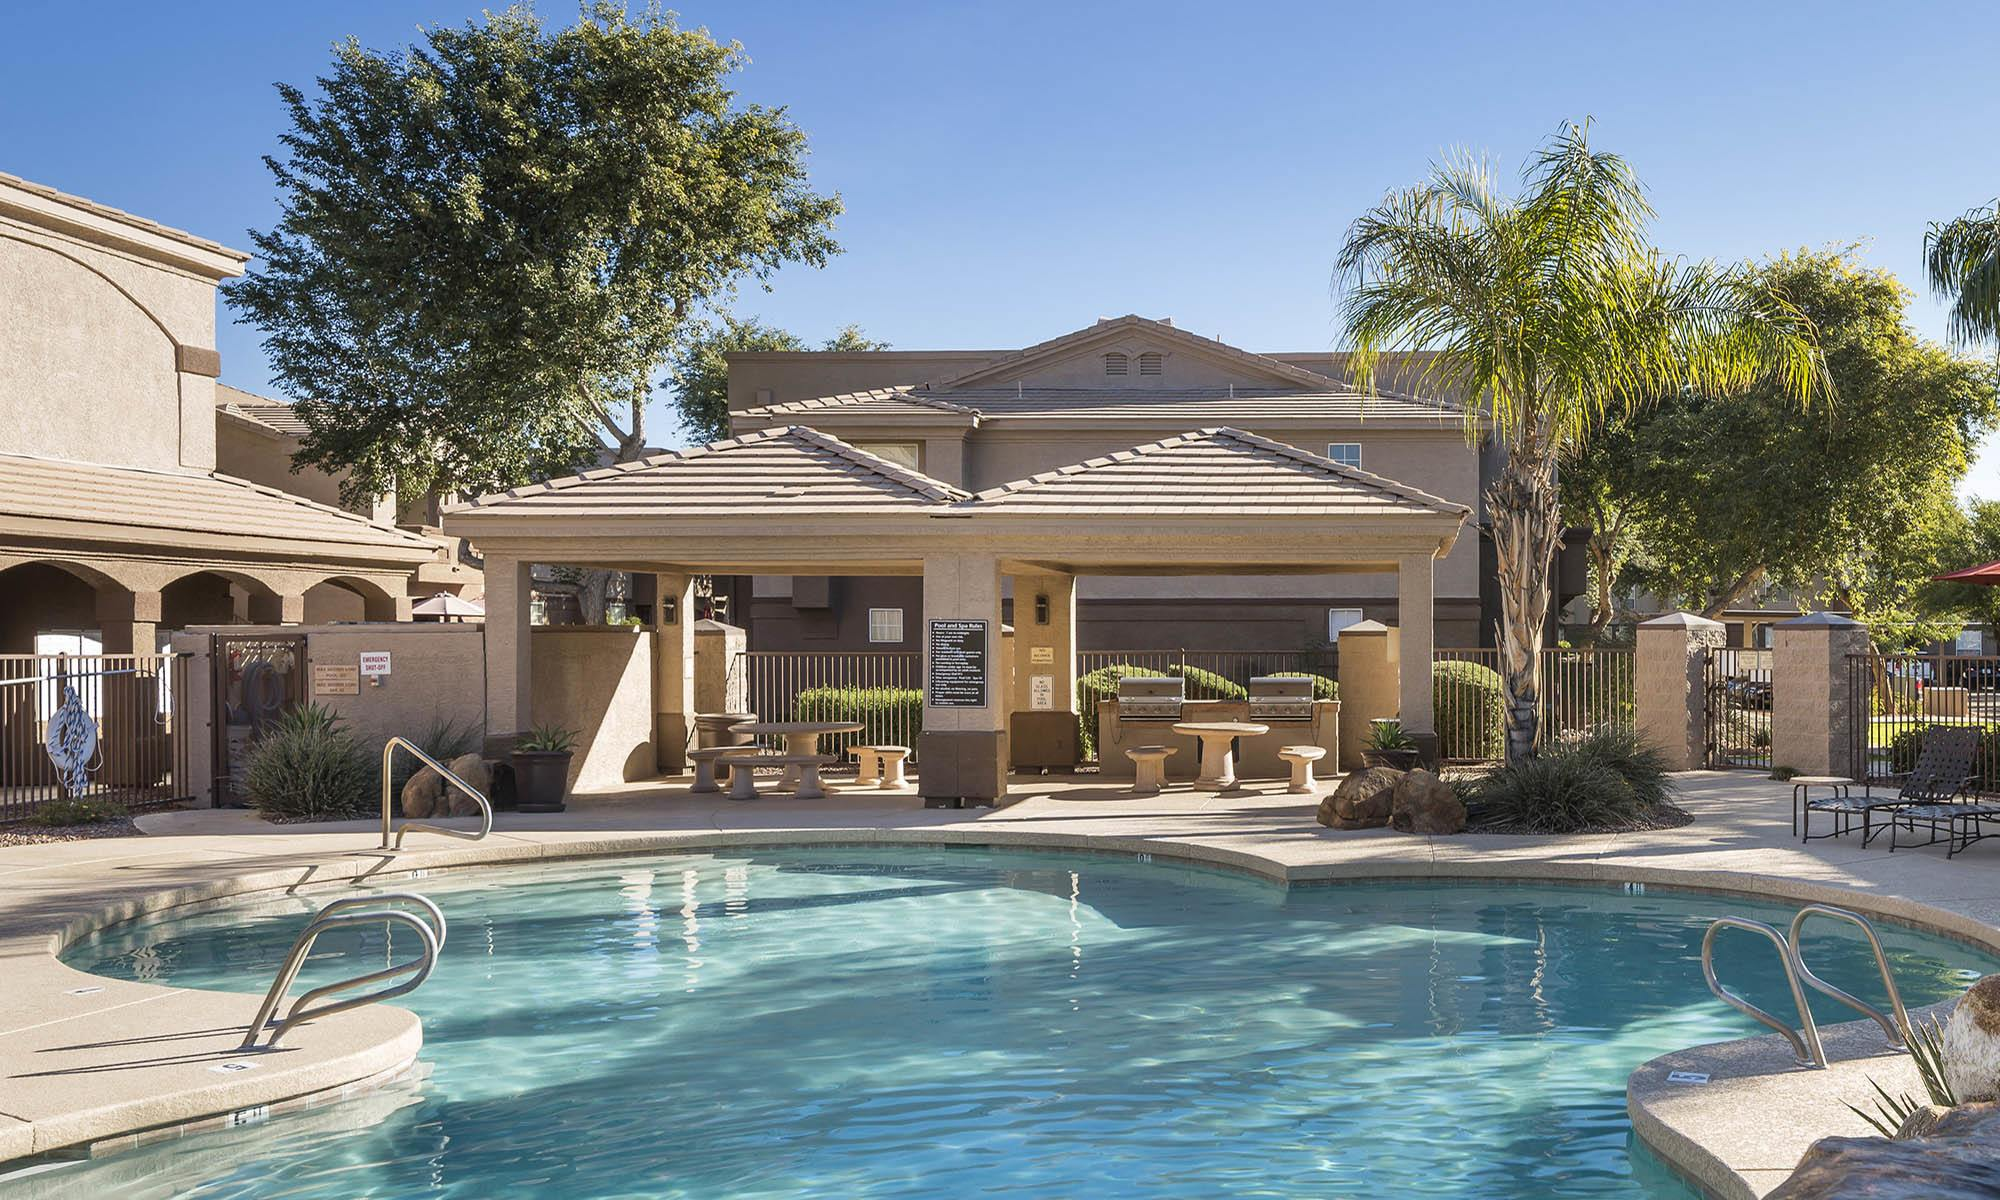 Be dazzled at unspeakable beauty in luxury apartments in Peoria, AZ